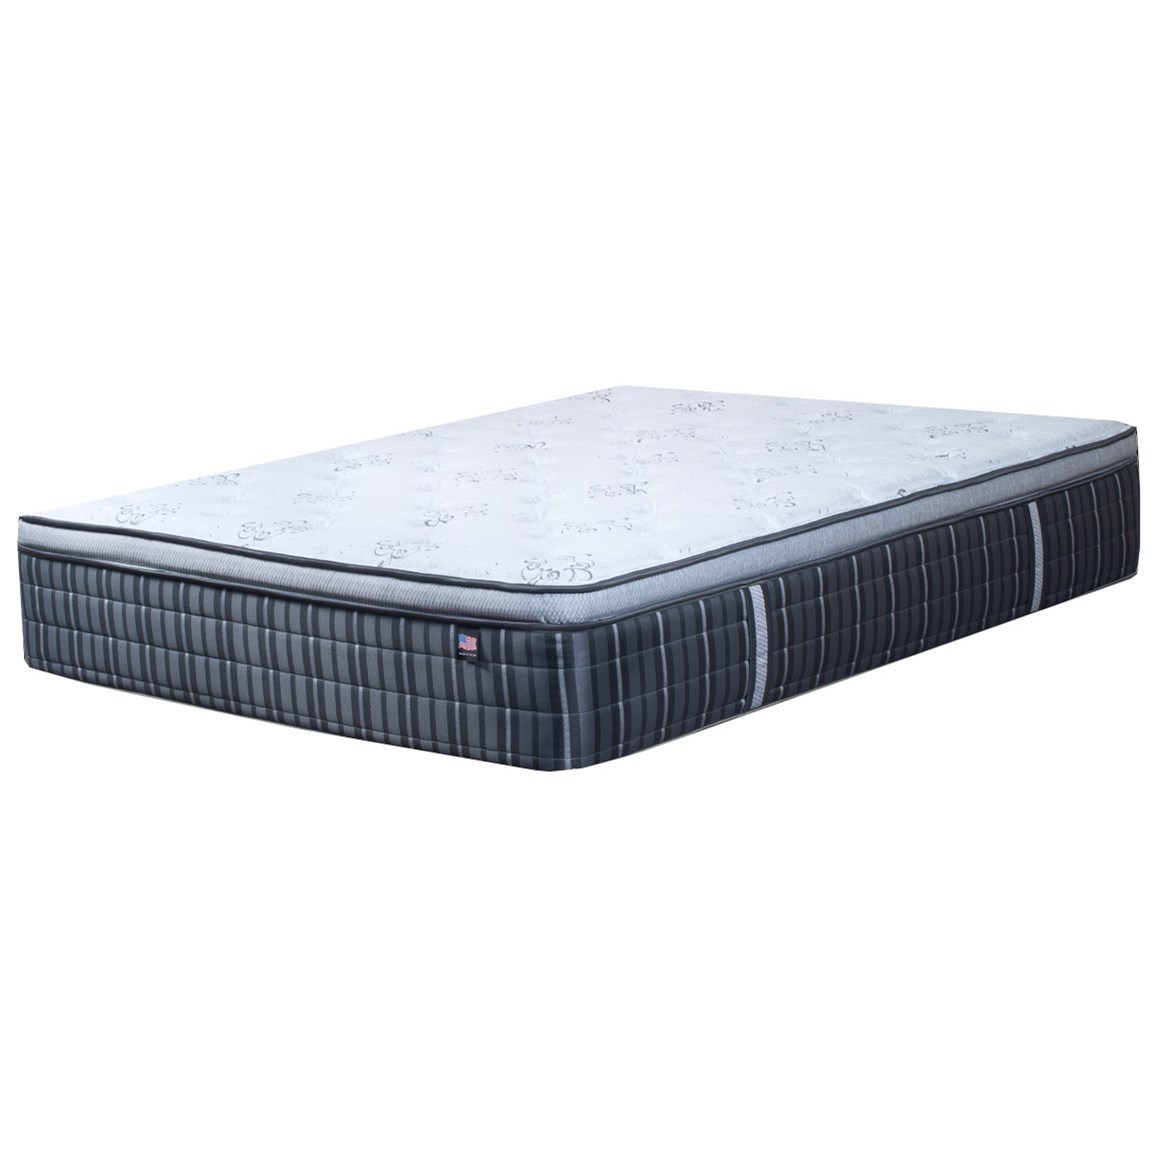 Bravura Virtuoso Luxury Pillow Top Twin Luxury Pillow Top Mattress by Therapedic at Rooms and Rest